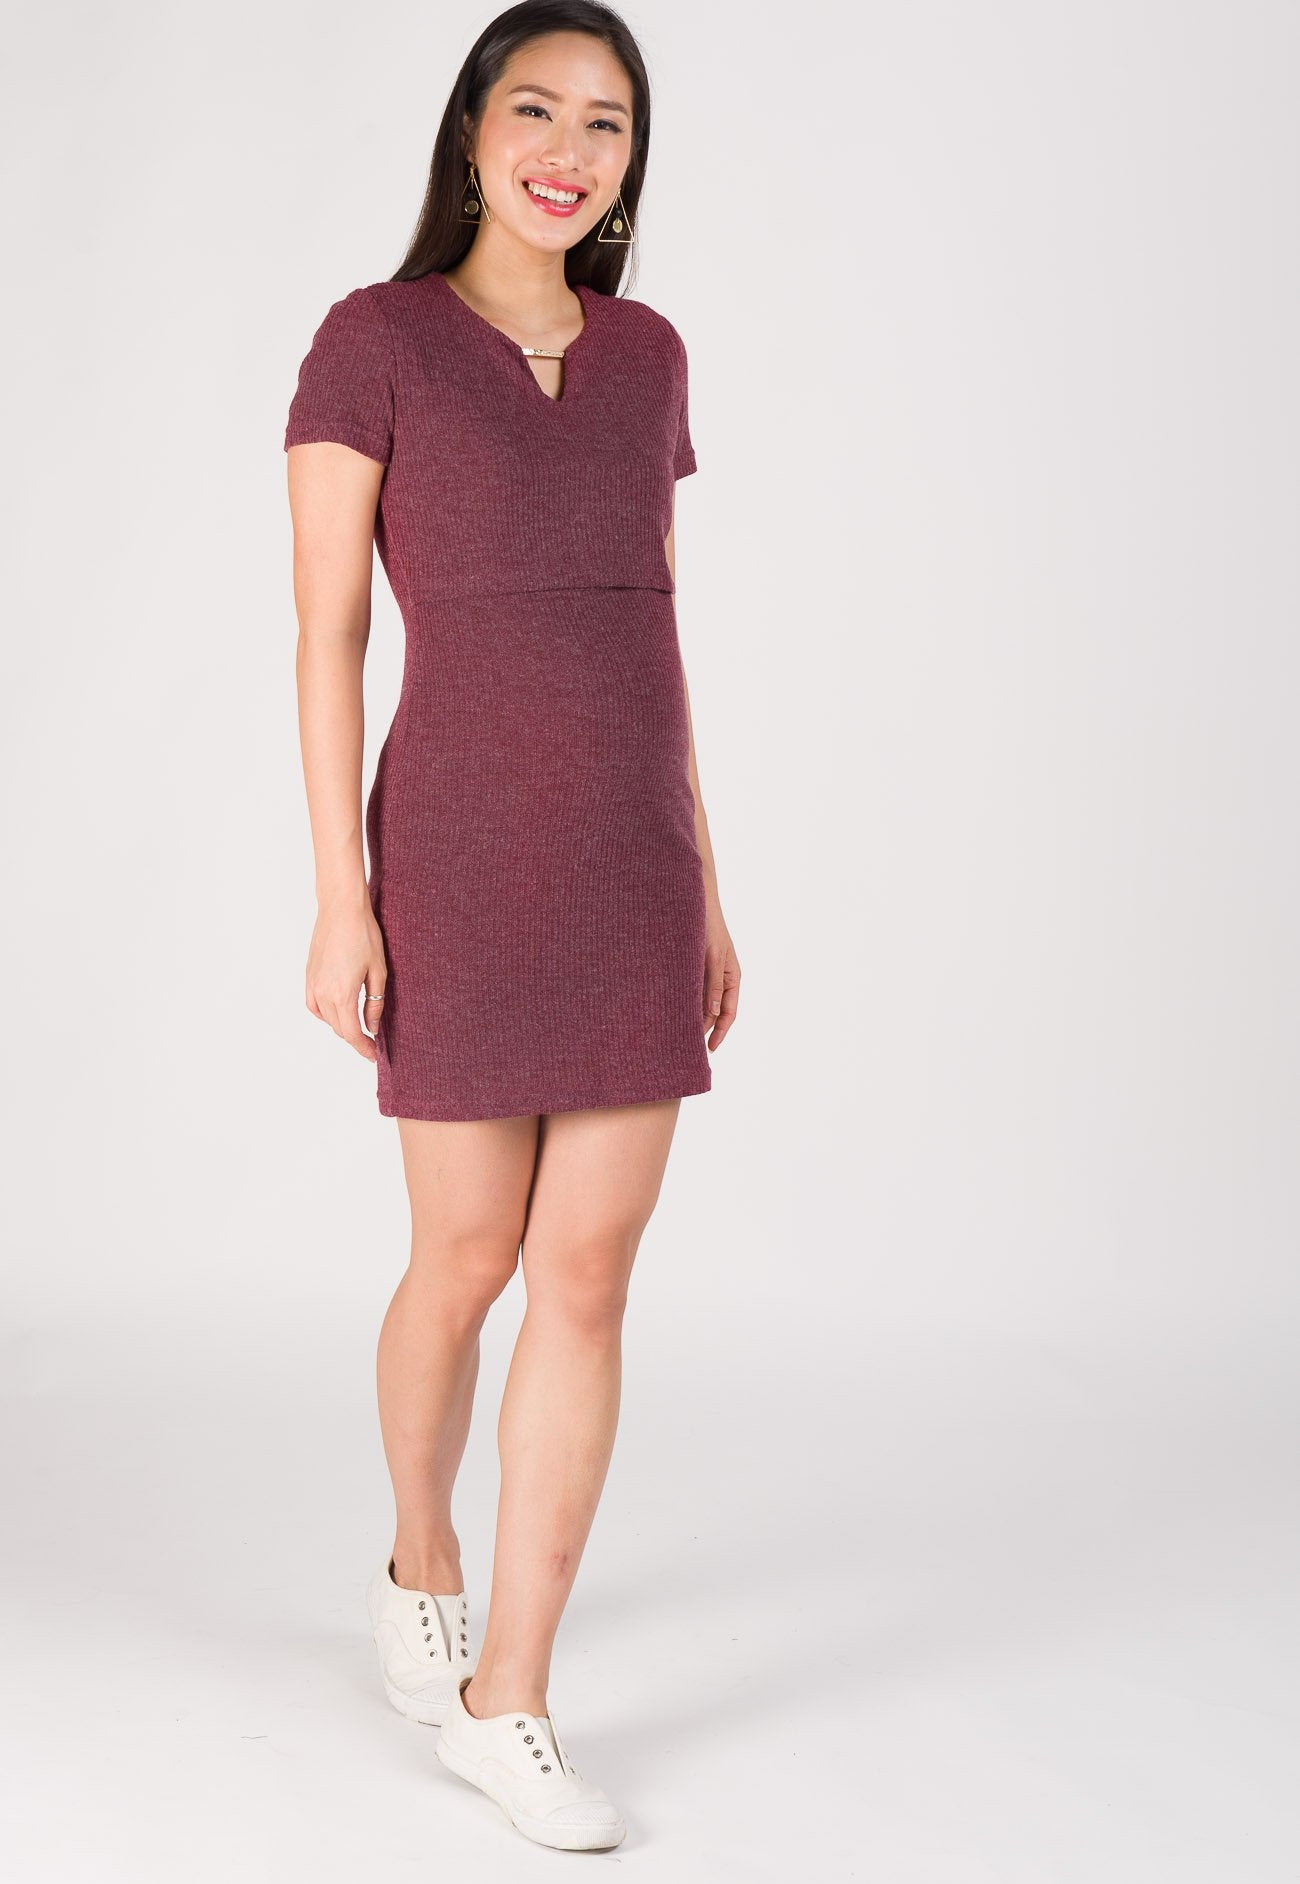 Nelya Ribbed Knit Nursing Dress in Wine  by Jump Eat Cry - Maternity and nursing wear